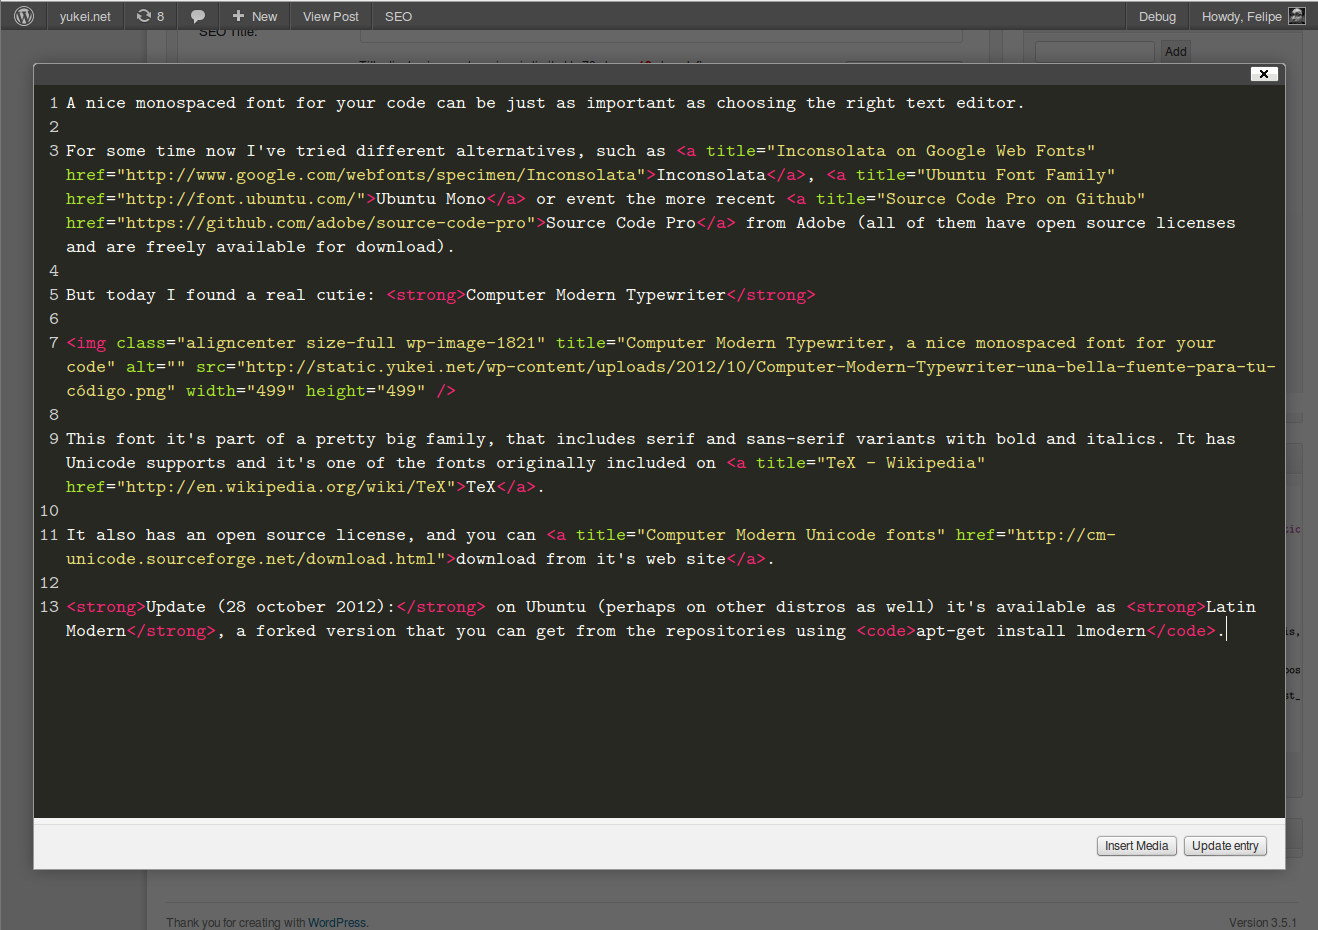 codemirror-for-post-editor screenshot 2